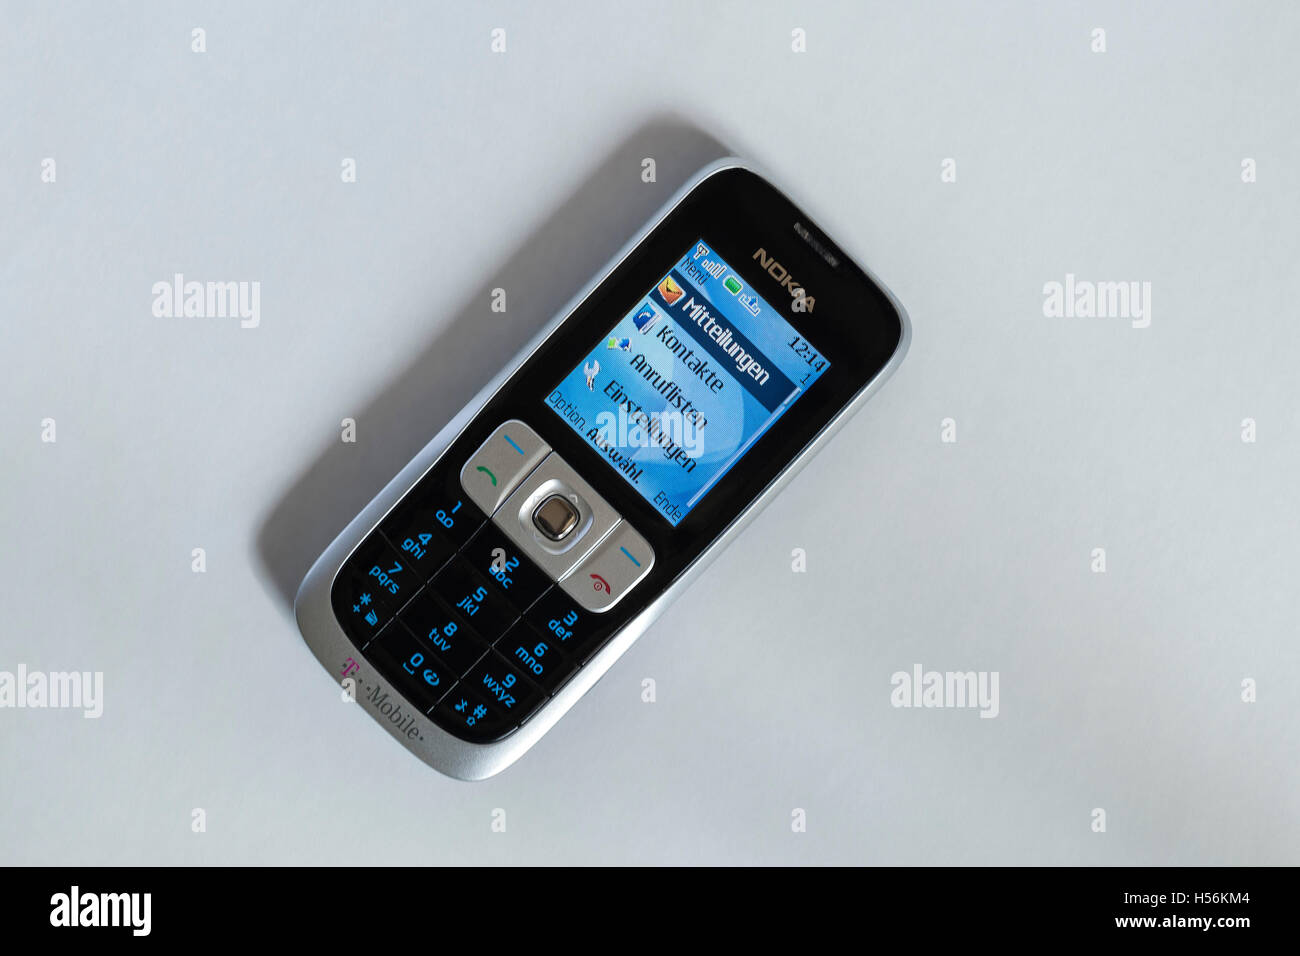 Outdated Nokia mobile phone, Germany - Stock Image